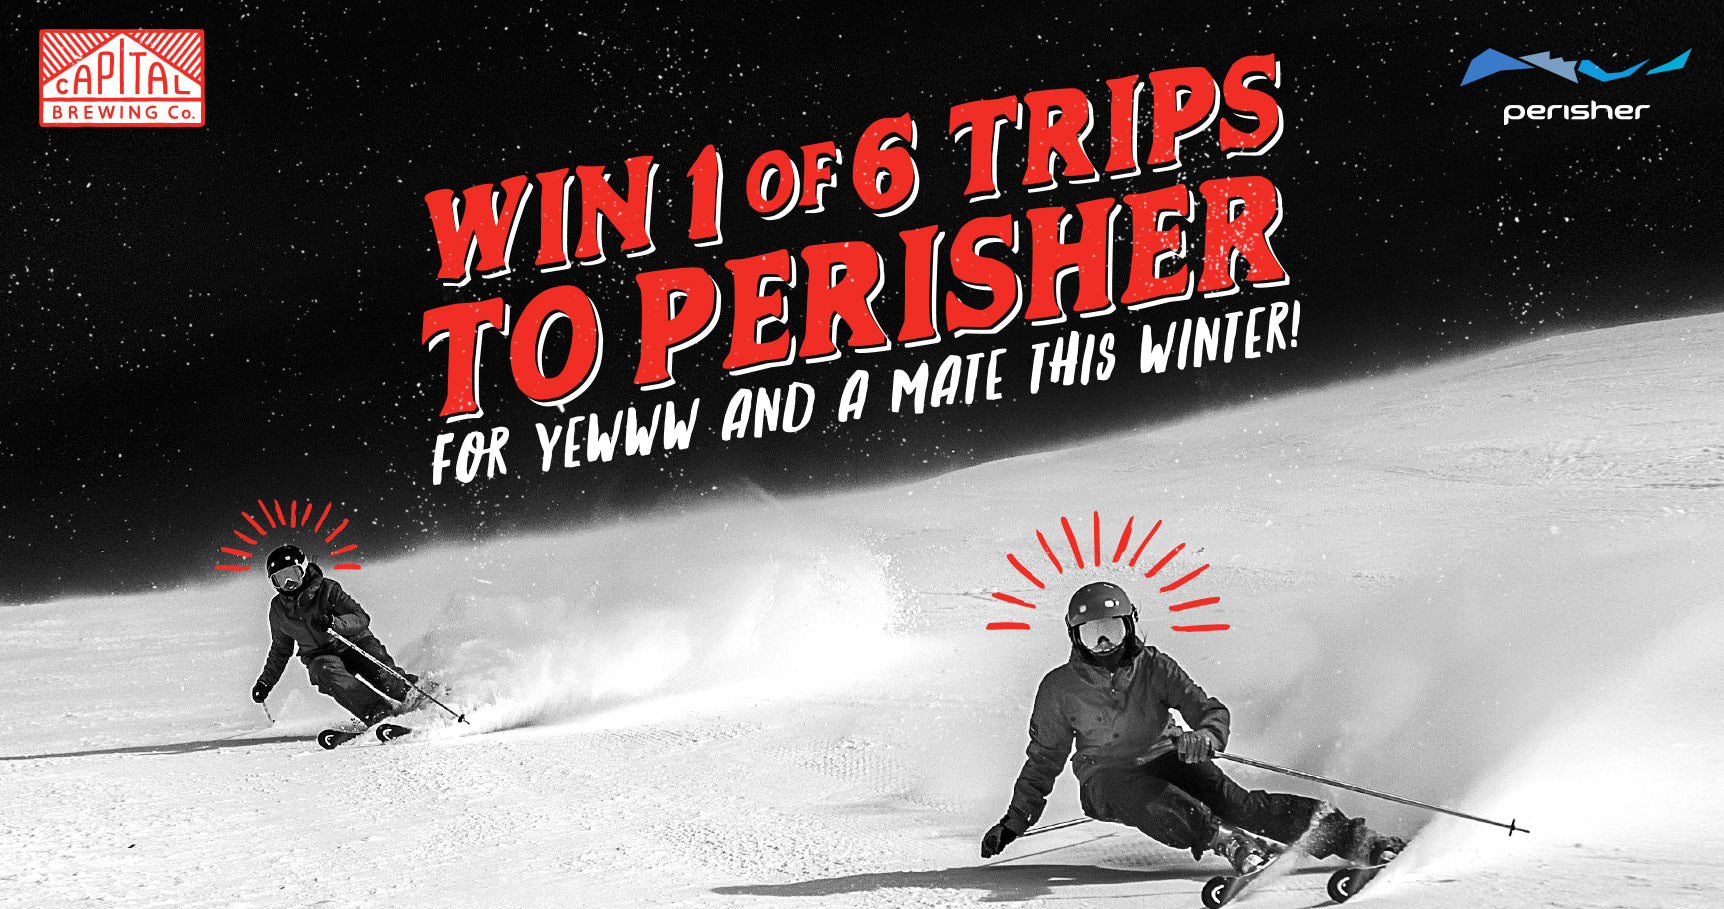 Win 1 of 6 Trips to Perisher For Yewwww and a Mate